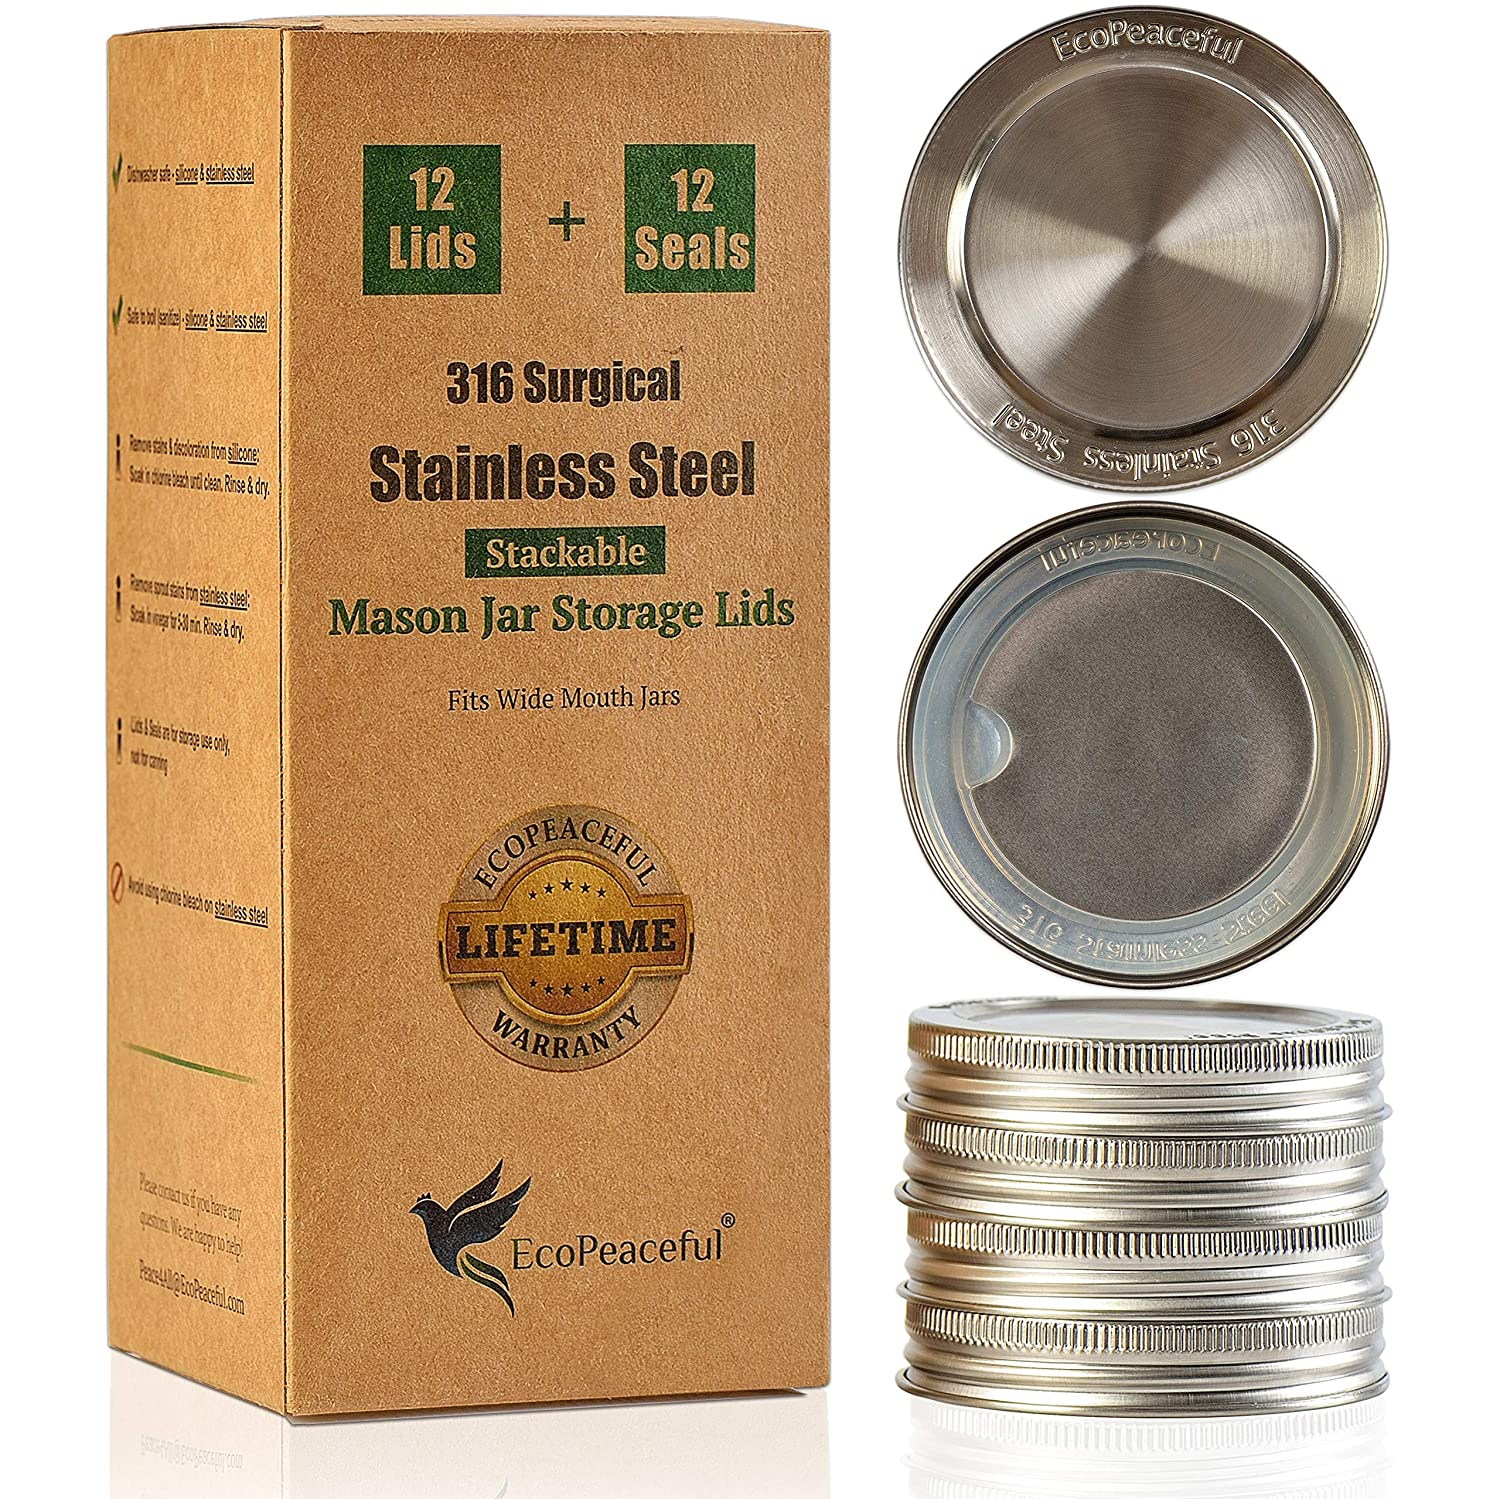 EcoPeaceful 12 Mason Jar Lids - 316 Surgical Stainless Steel Wide Mouth Mason Jar Lids. Leak-Proof Silicone Seal. Replacement for Canning Lids & Plastic Caps. Rust-free, BPA-free, PVC-free, Vinyl-free